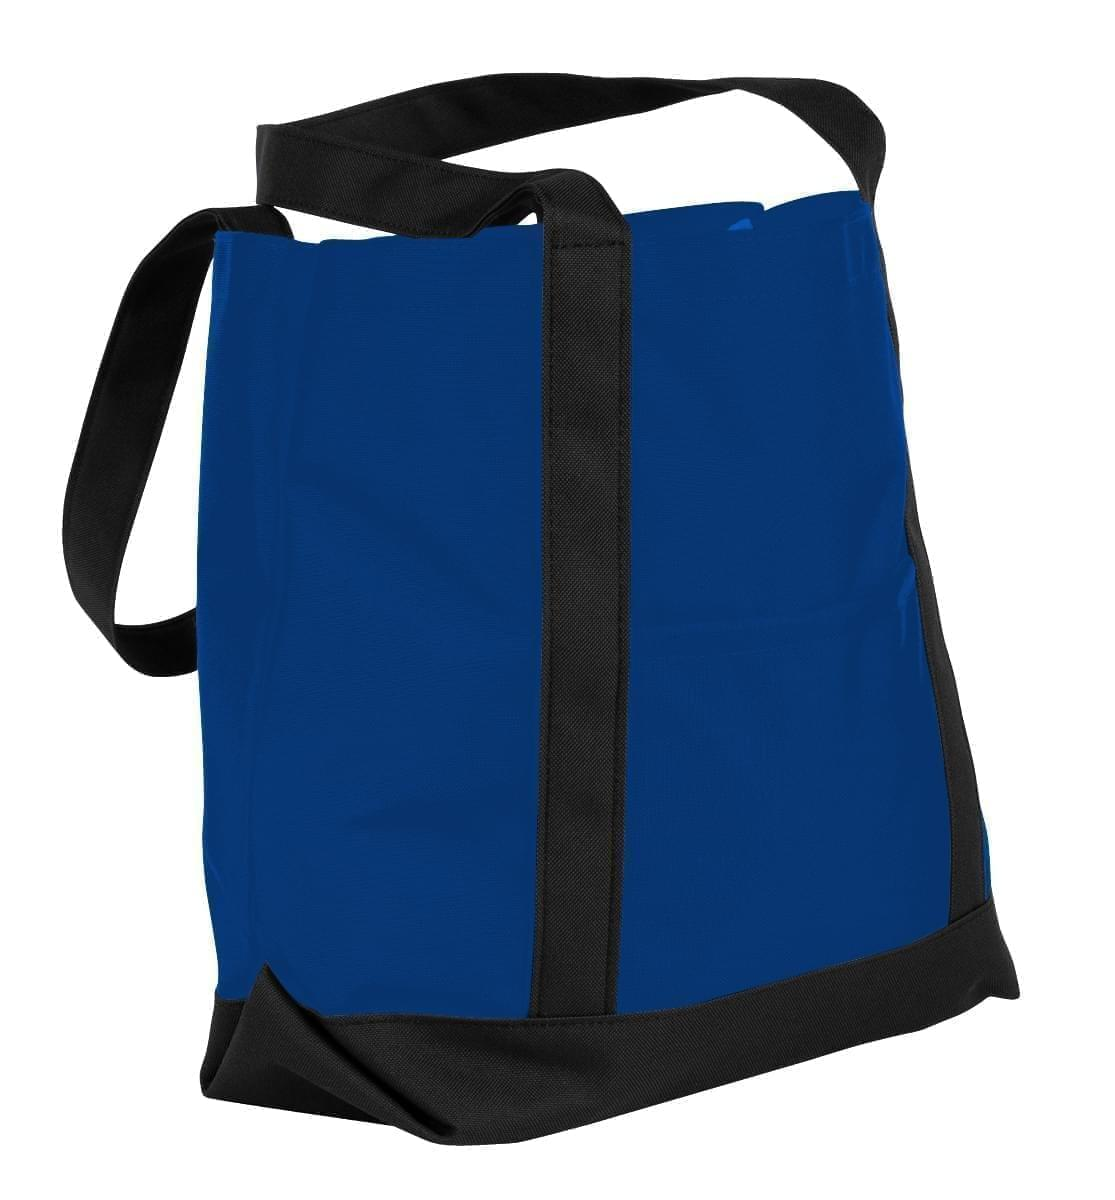 USA Made Canvas Fashion Tote Bags, Royal Blue-Black, XAACL1UAFC